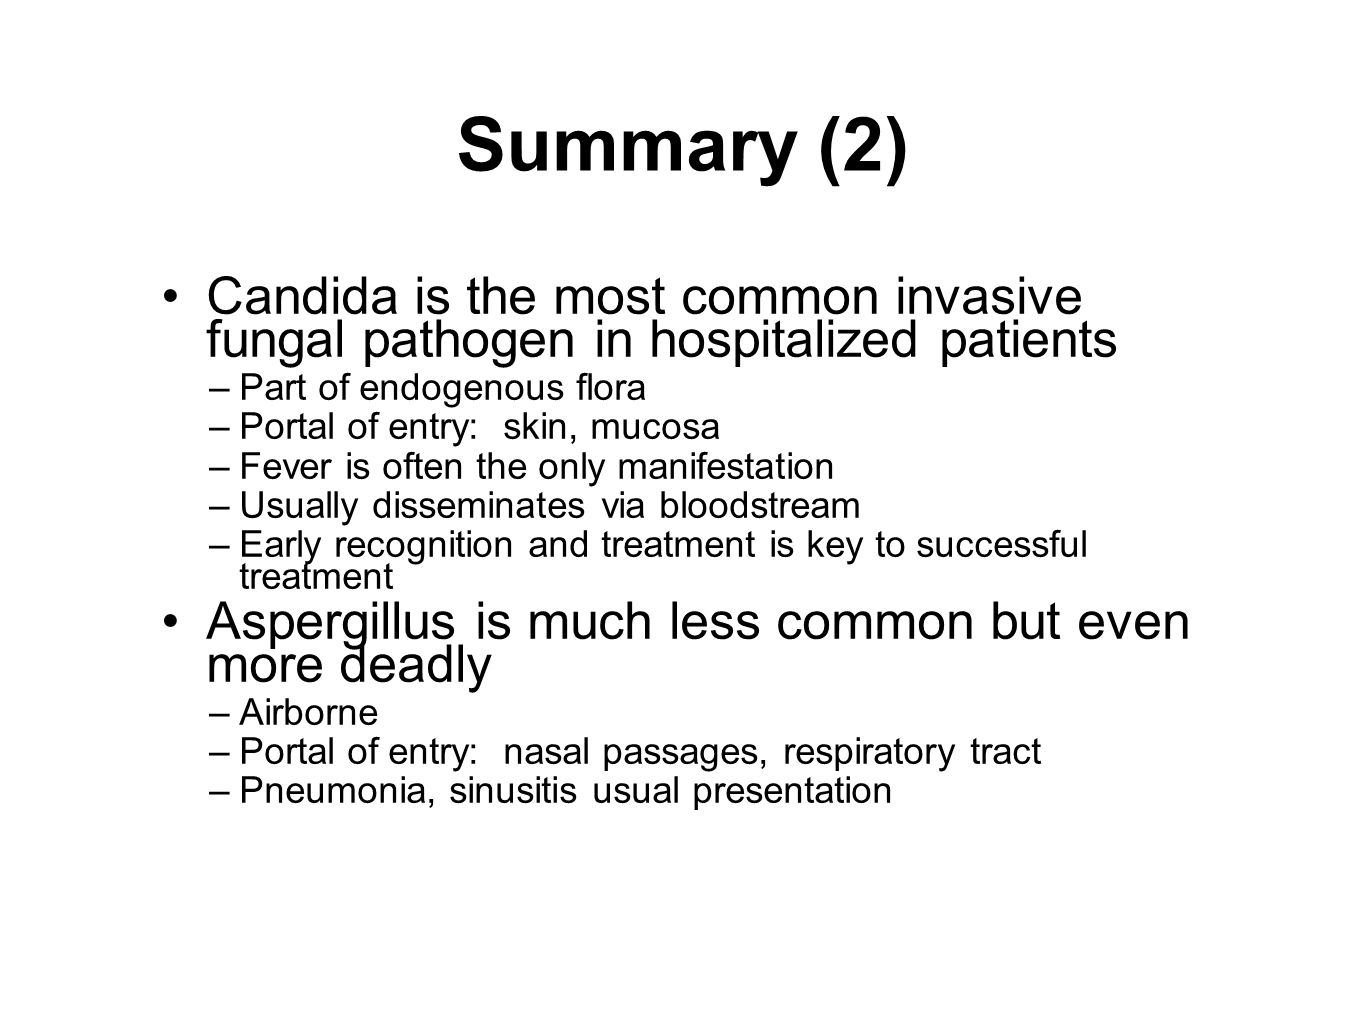 Summary (2) Candida is the most common invasive fungal pathogen in hospitalized patients. Part of endogenous flora.